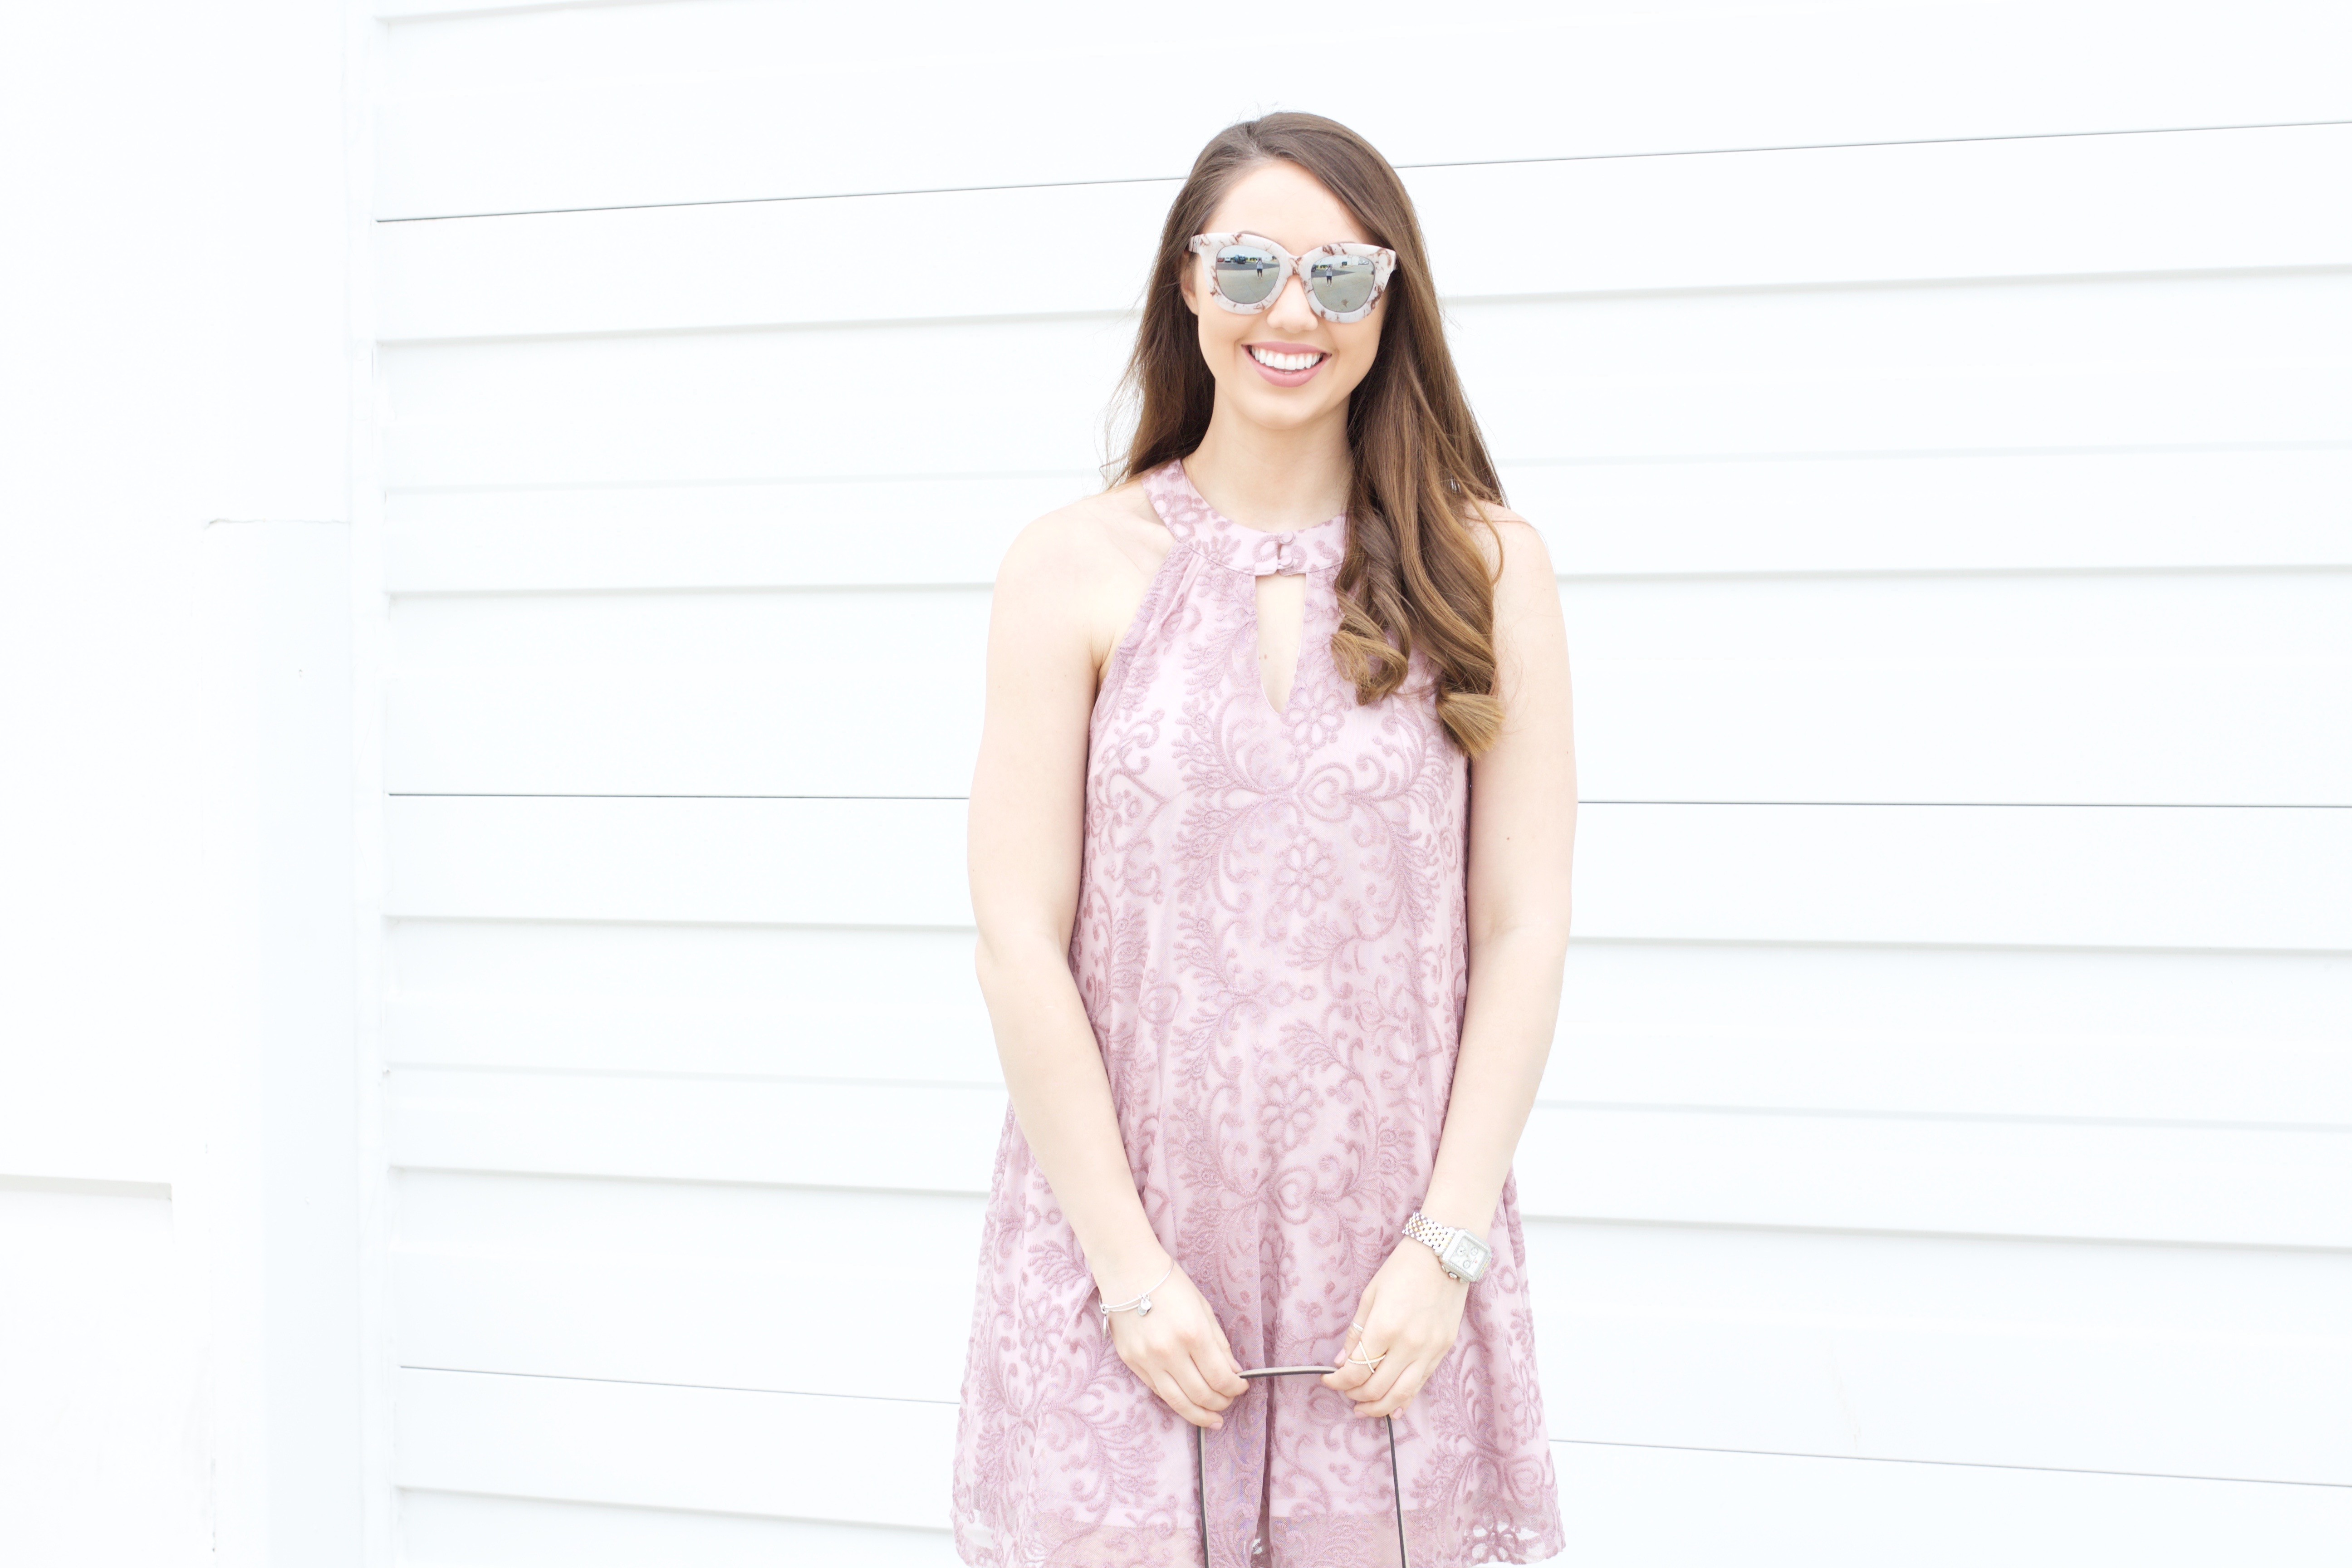 Easter dress womens outfit idea 2017